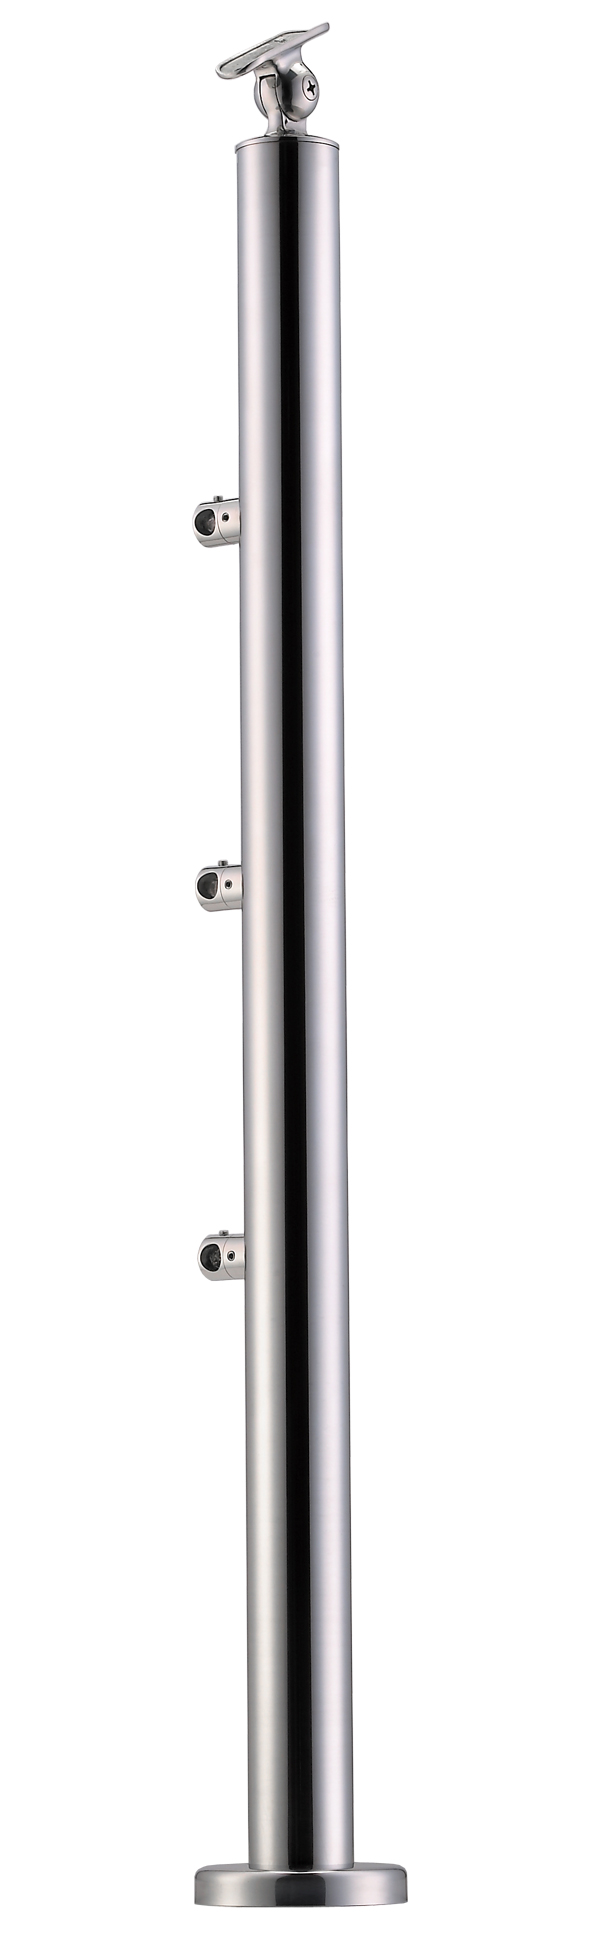 Stainless Steel Balustrade Posts - Tubular - SS:2020357A